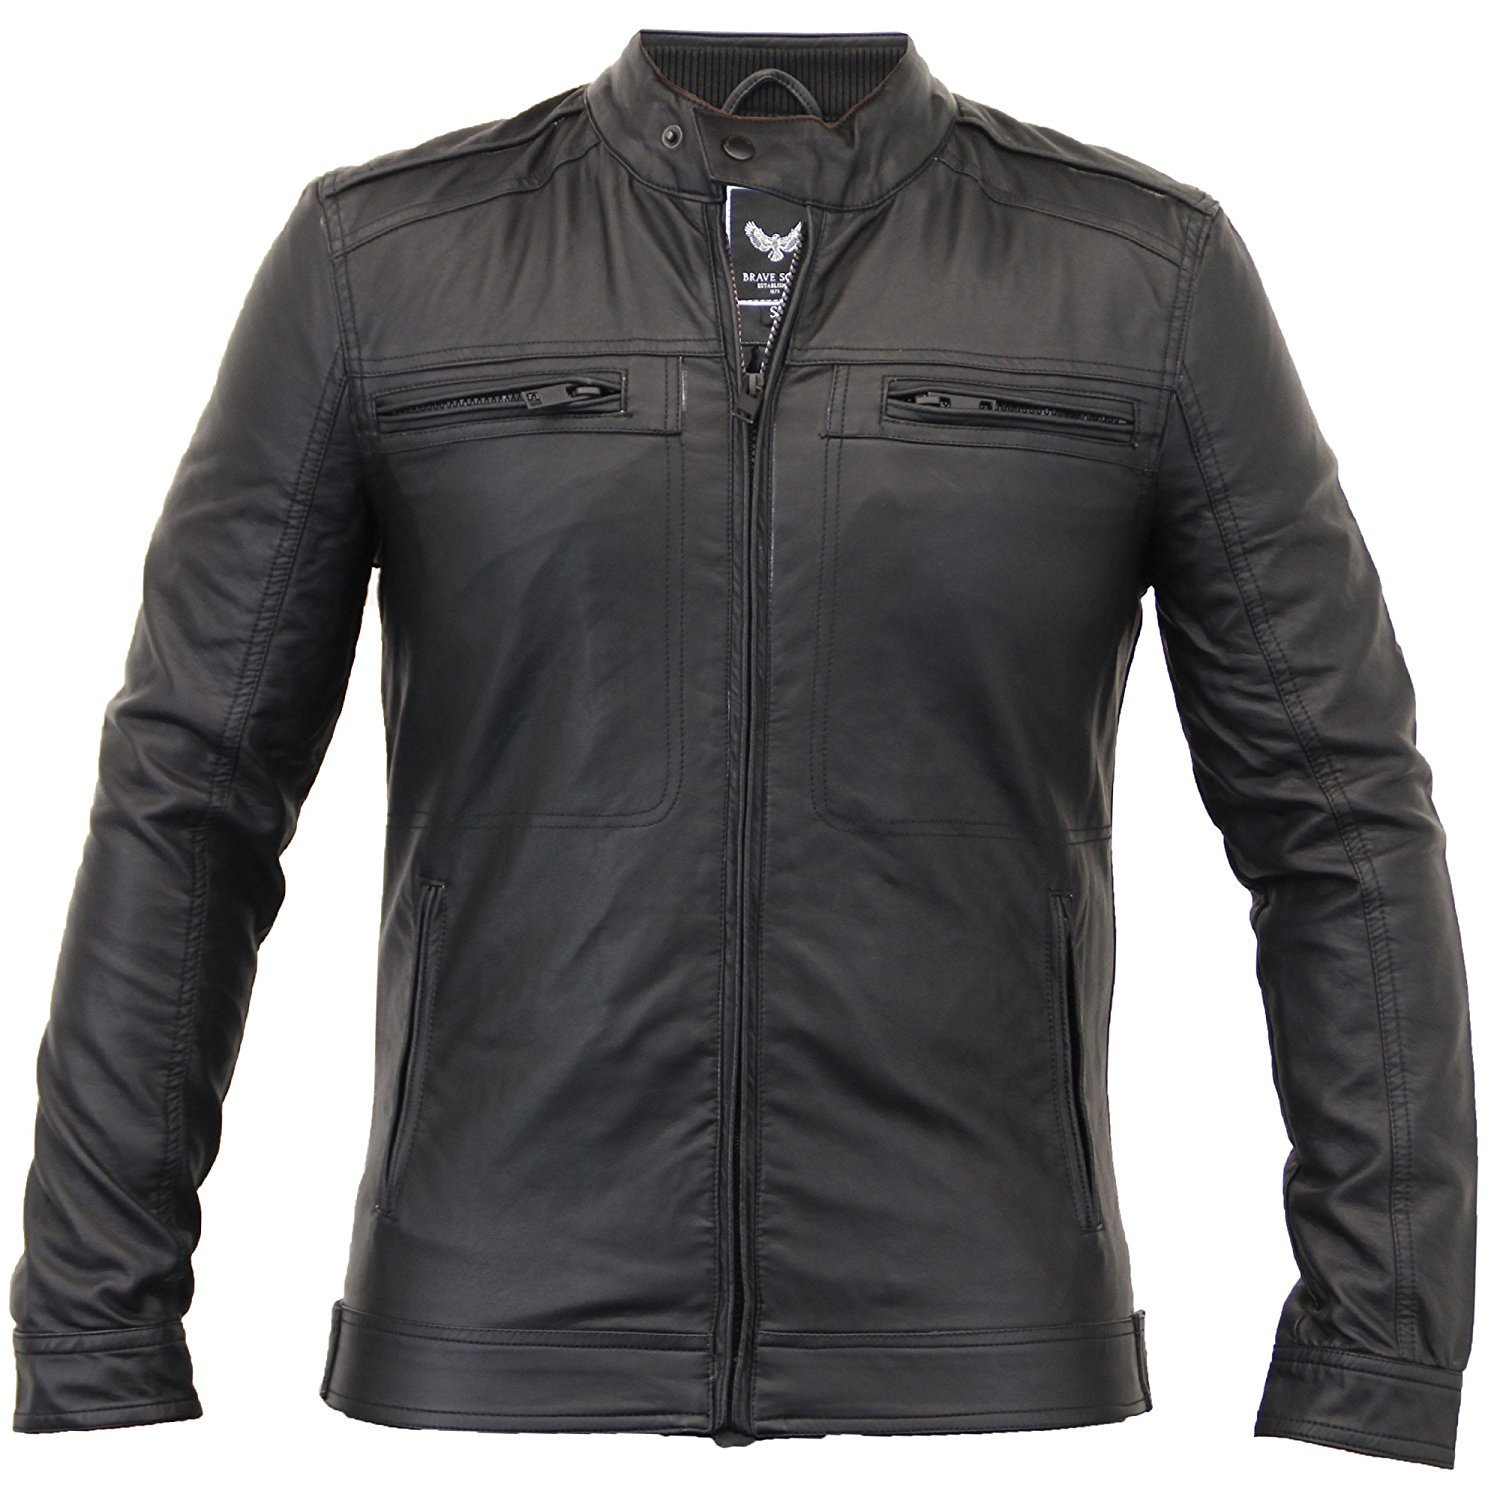 Love My Fashions New Mens Black Faux Leather Zipped Side Pockets Jacket Size S M L XL